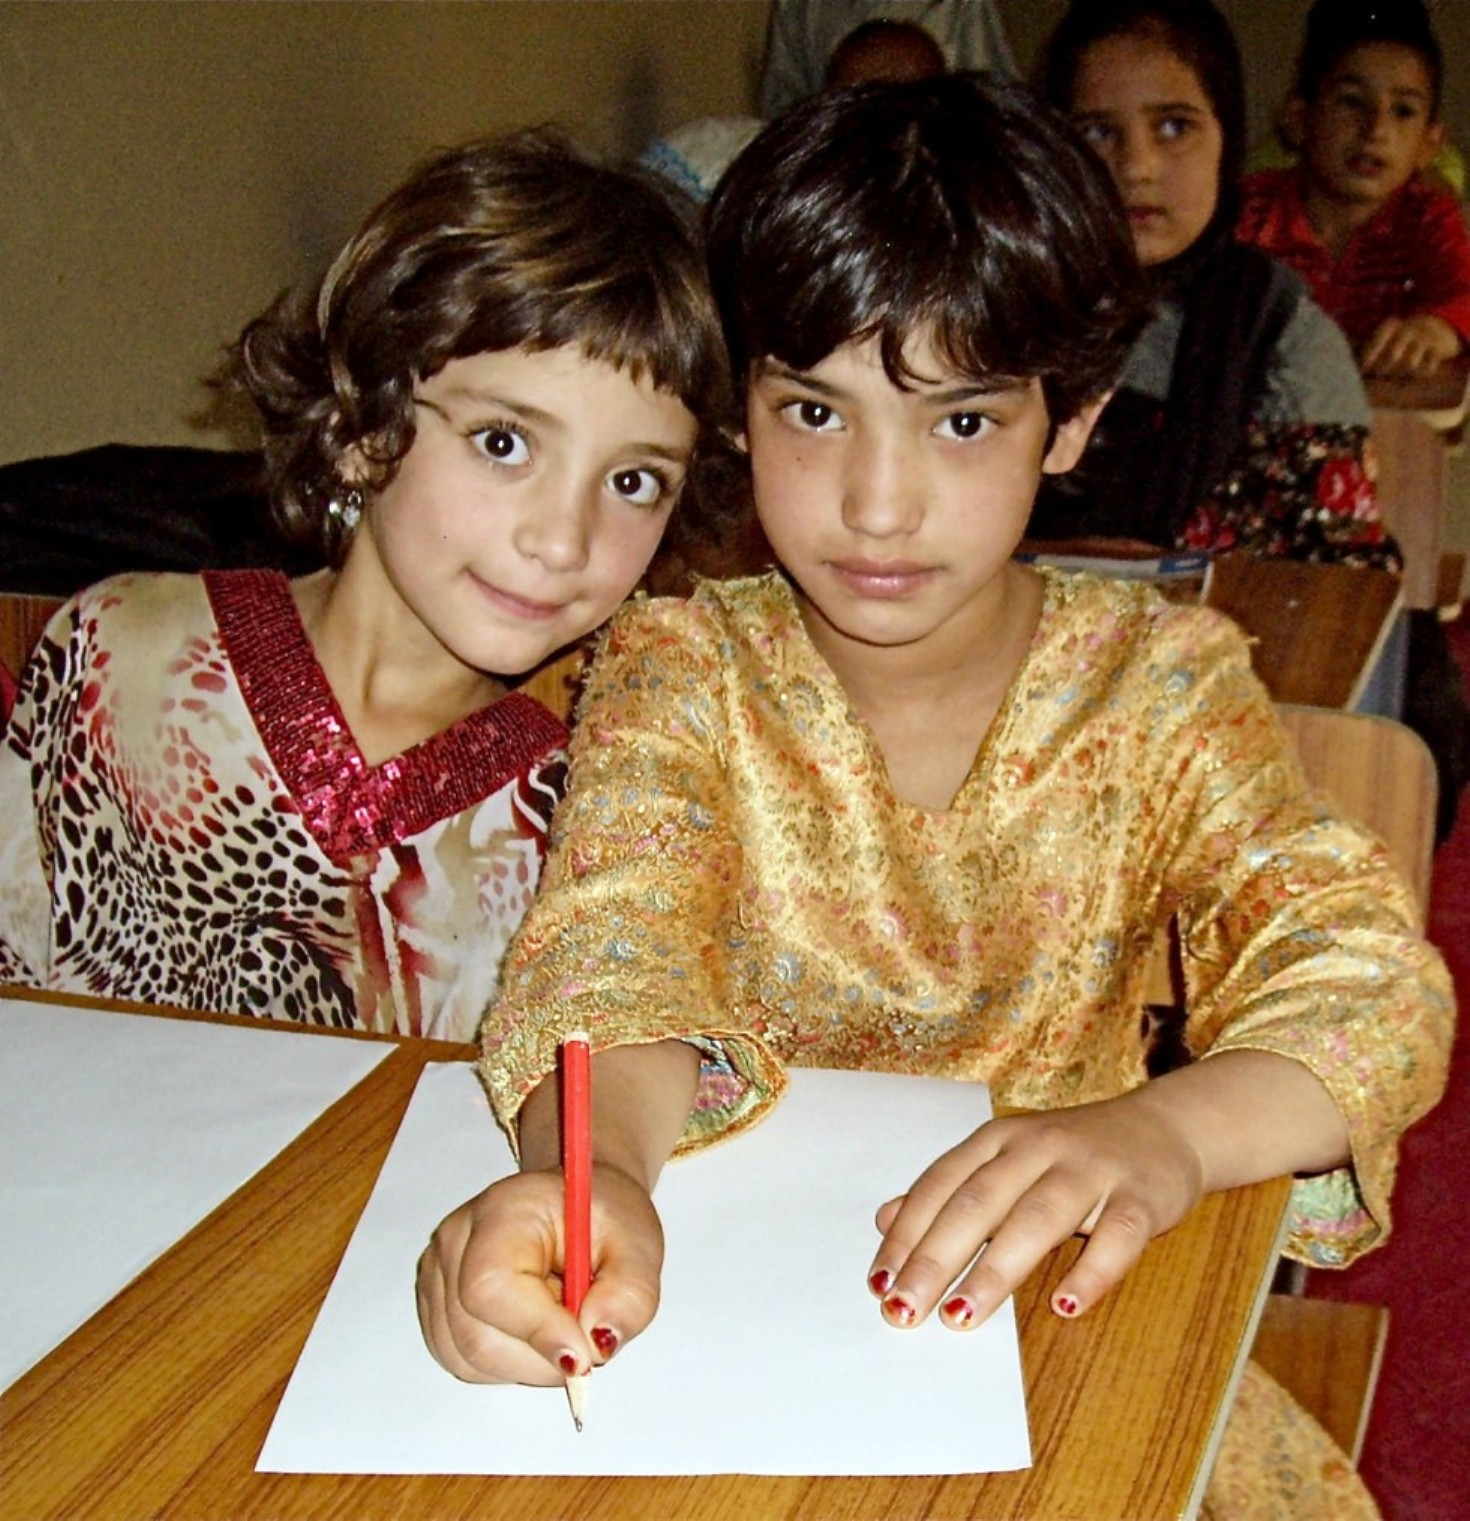 Two girls at a desk, cu